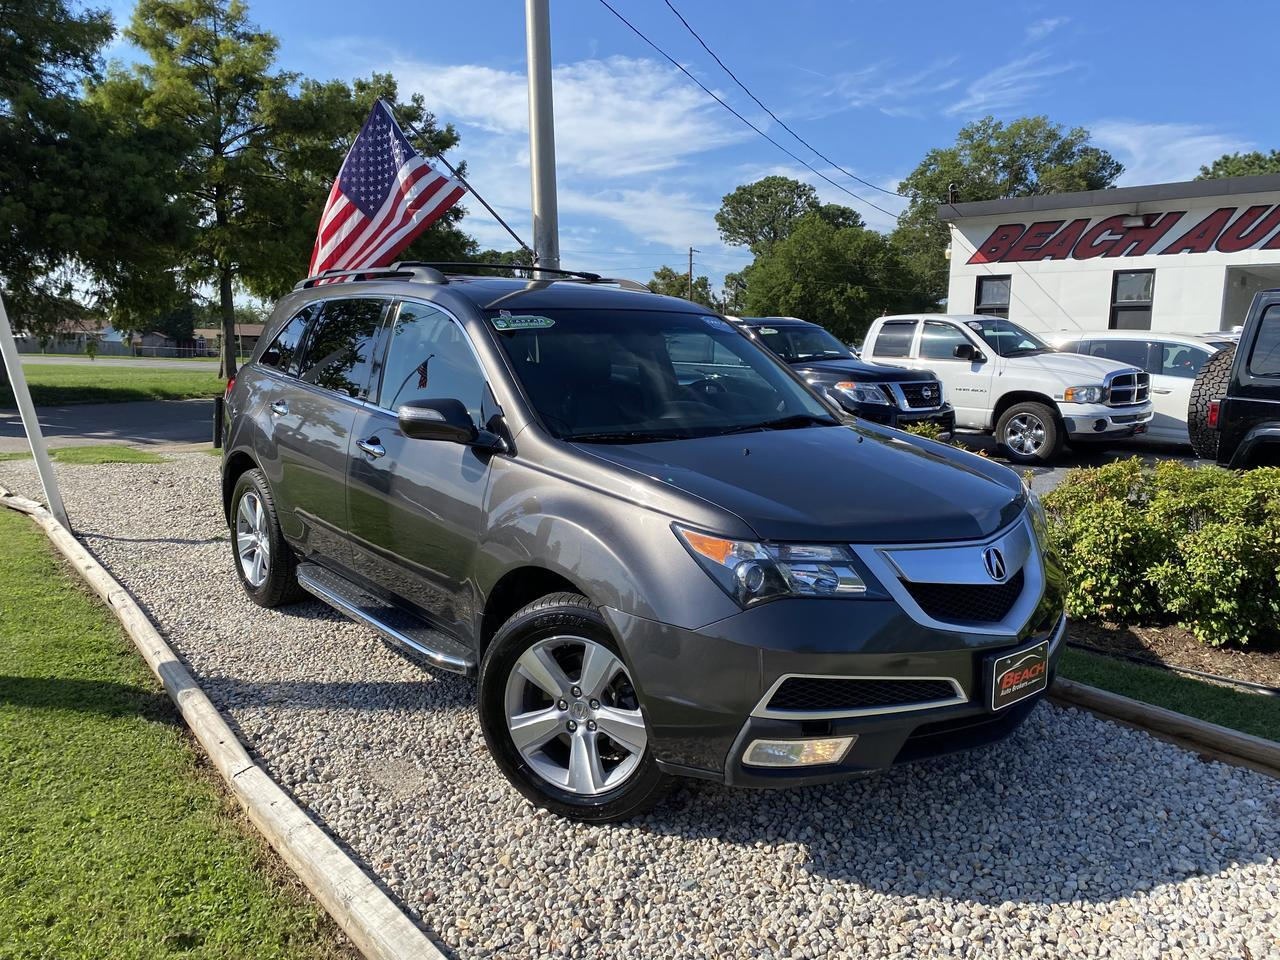 2012 ACURA MDX TECH, WARRANTY, LEATHER, SUNROOF, NAV, HEATED SEATS, BLUETOOTH, BACKUP CAM, 1 OWNER, LOW MILES!